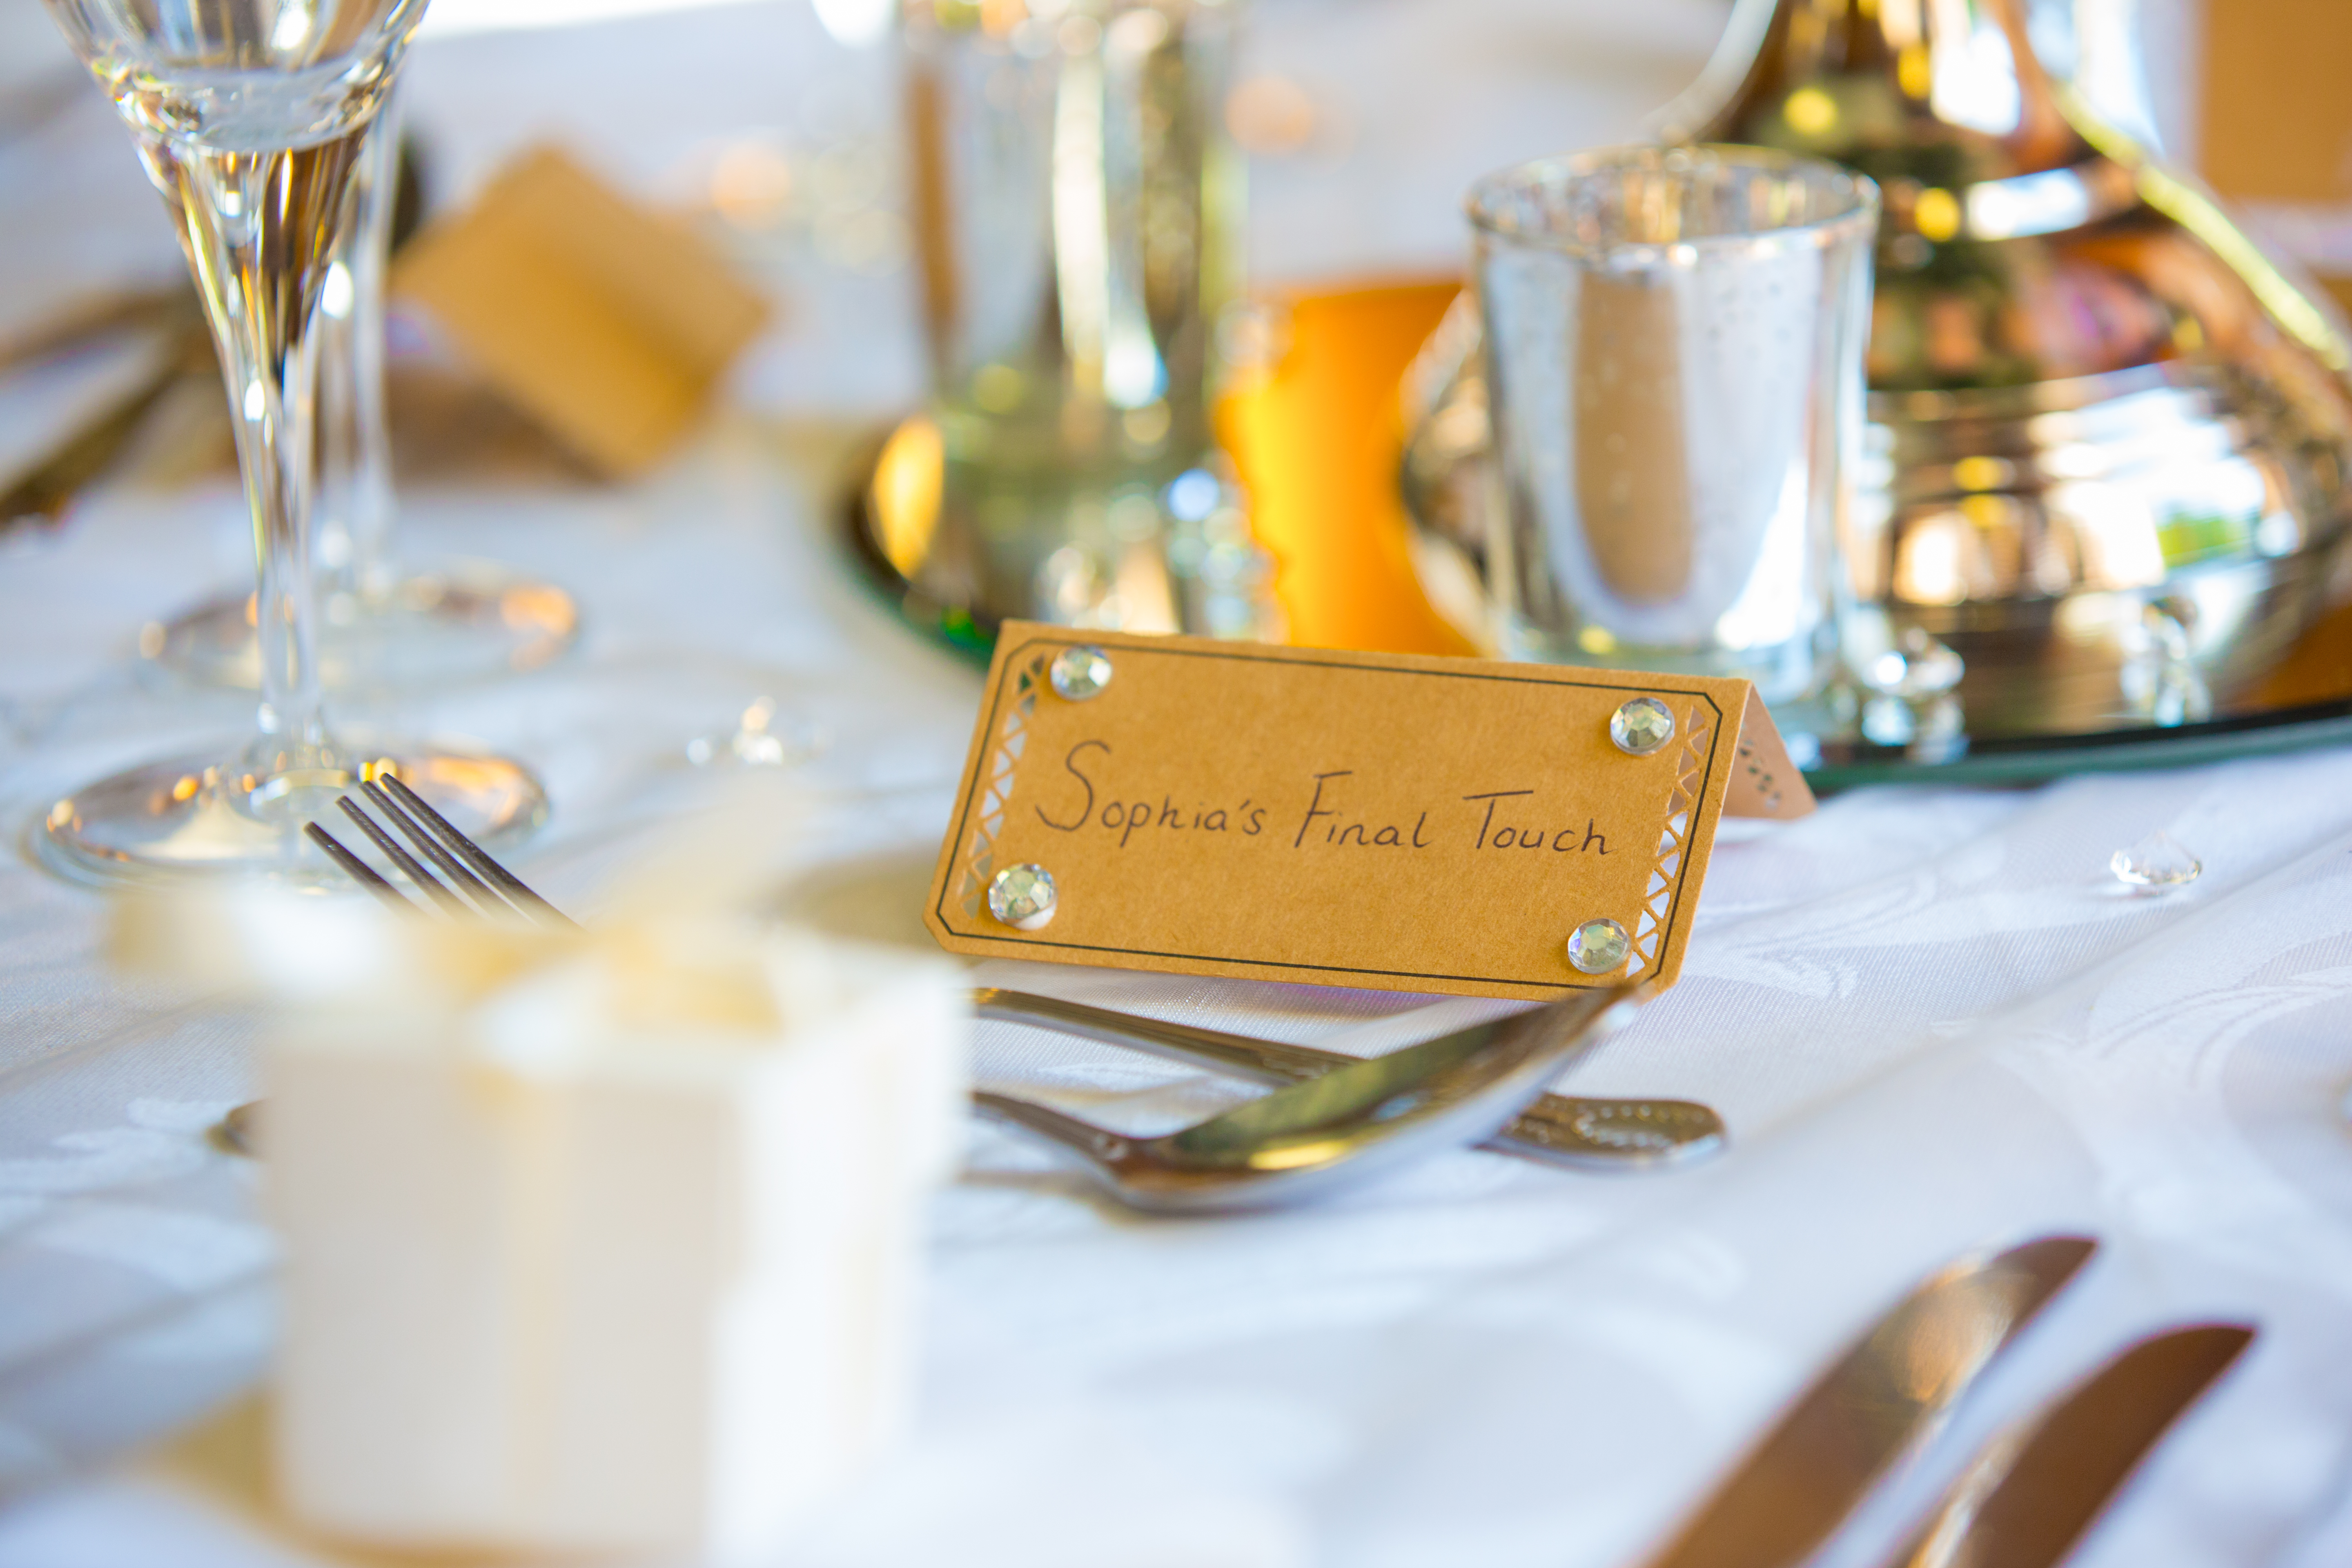 Rustic Place Cards with Gems - Sophia's Final Touch - Venue Styling - Weddings